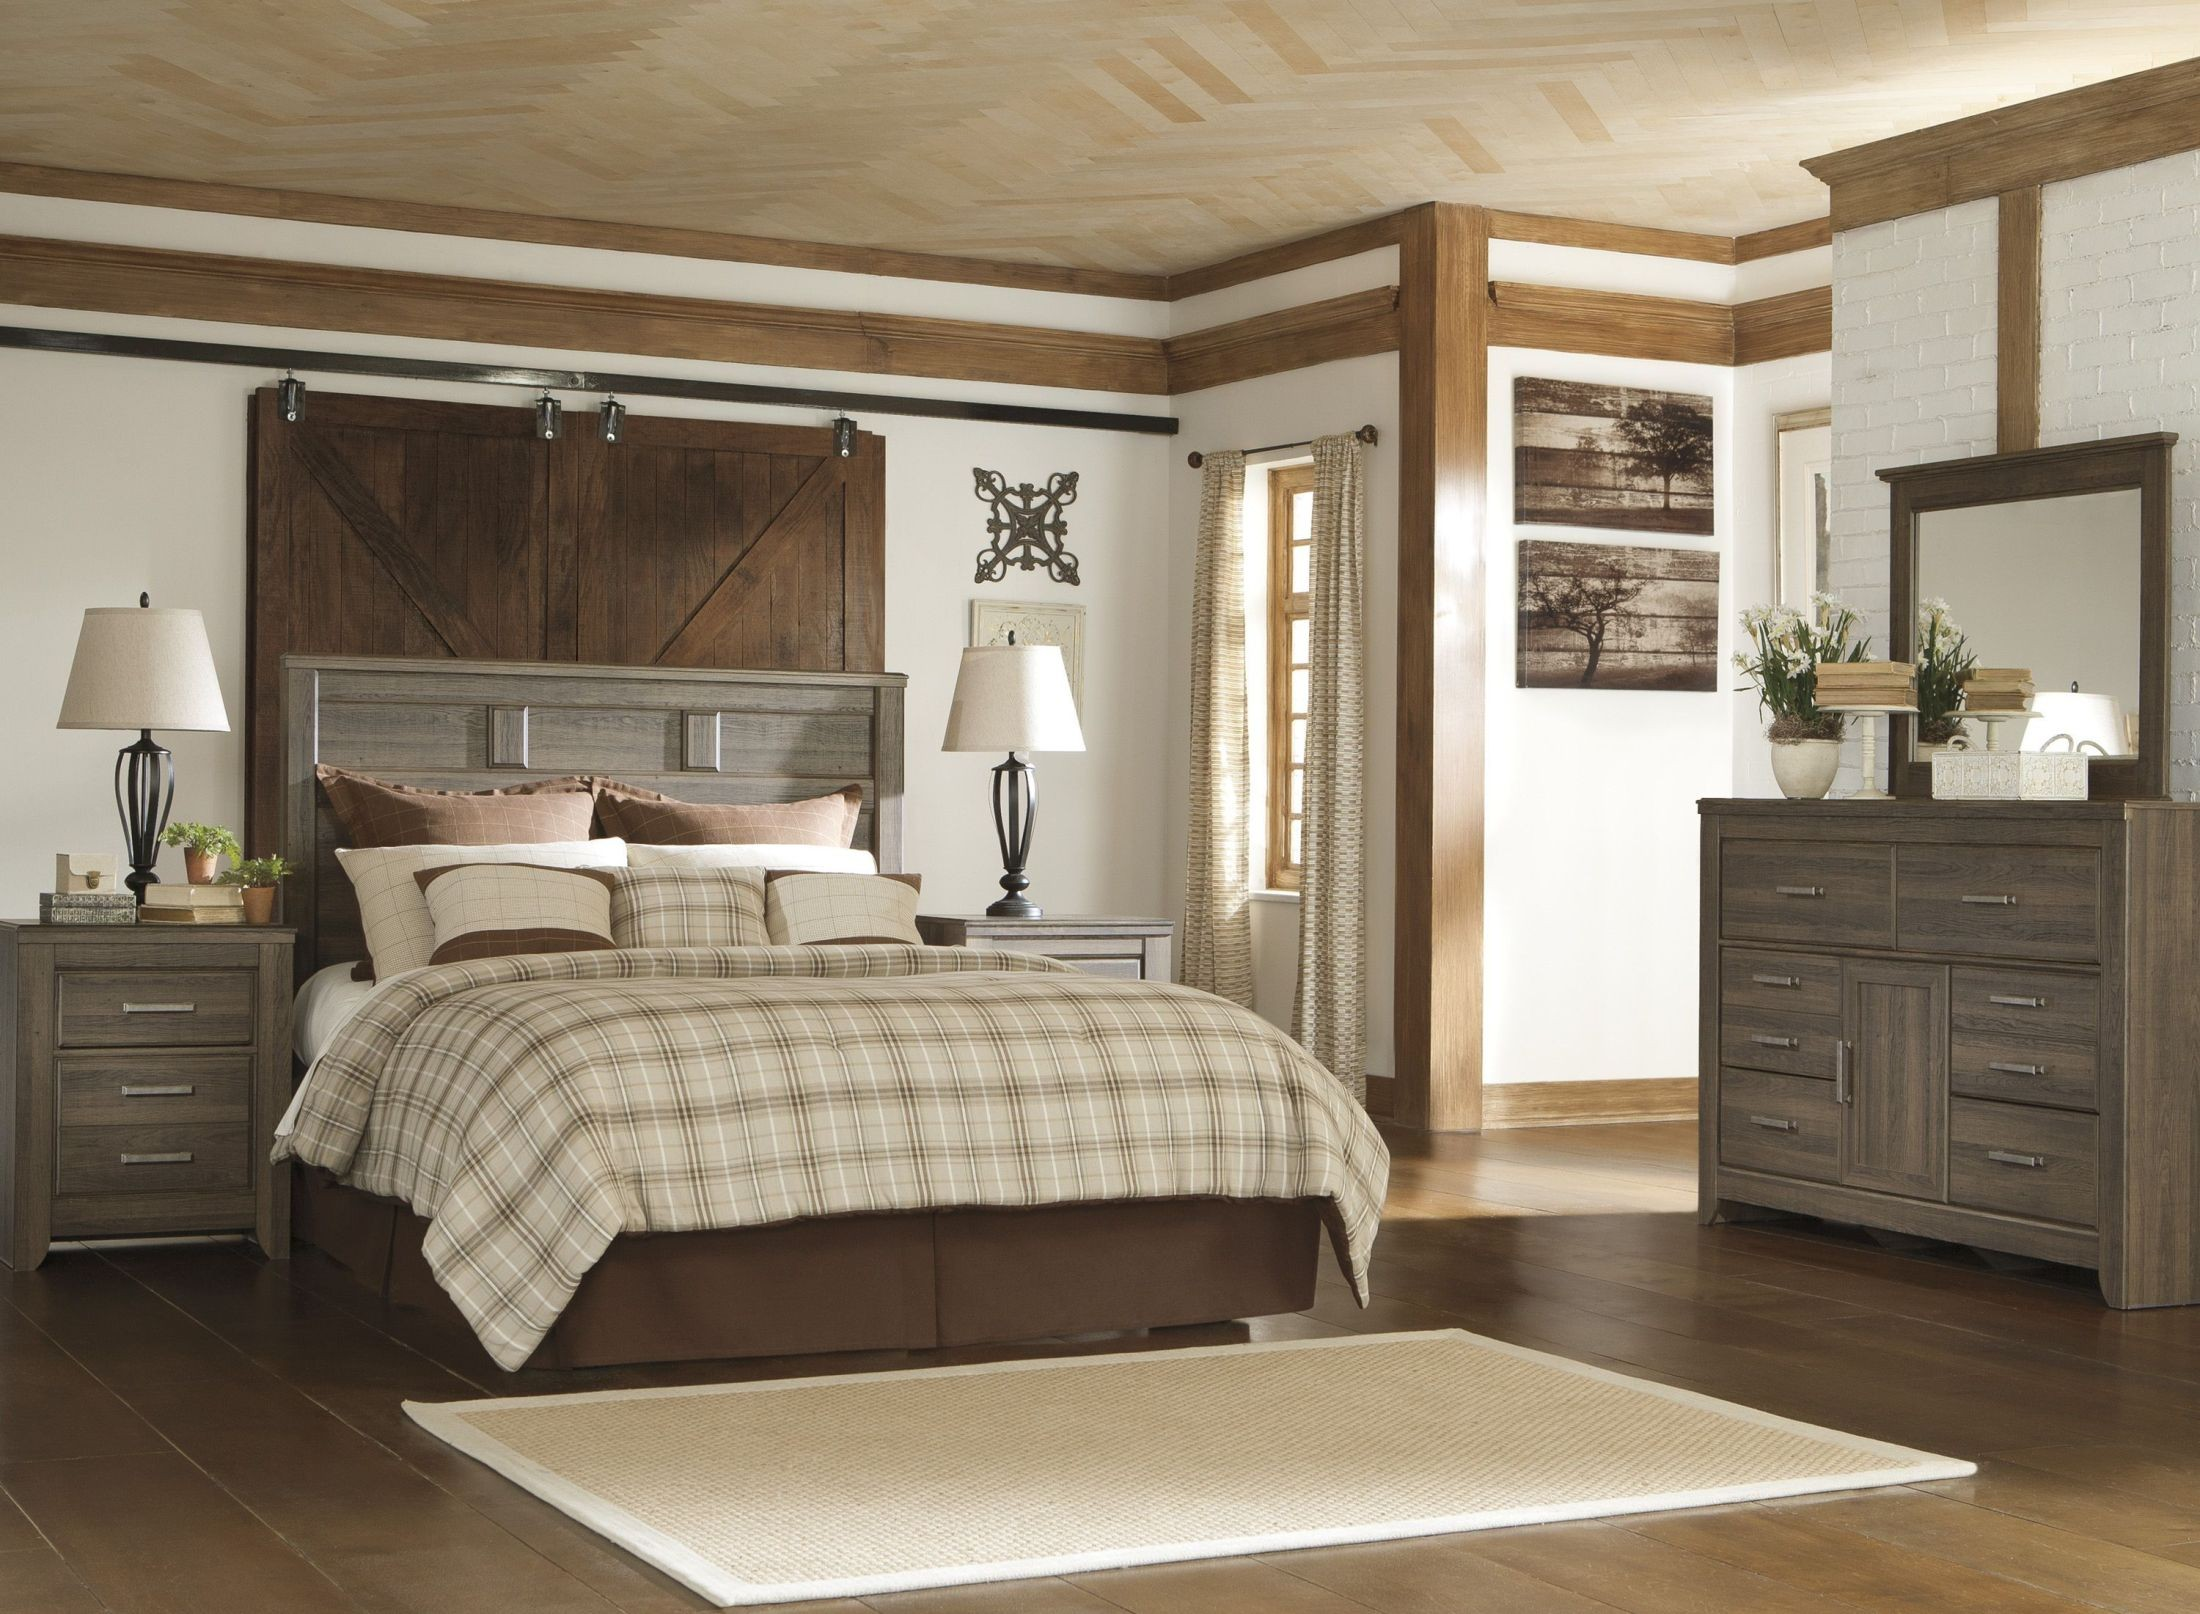 Juararo Panel Bedroom Set From Ashley B251 57 54 98 Coleman Furniture